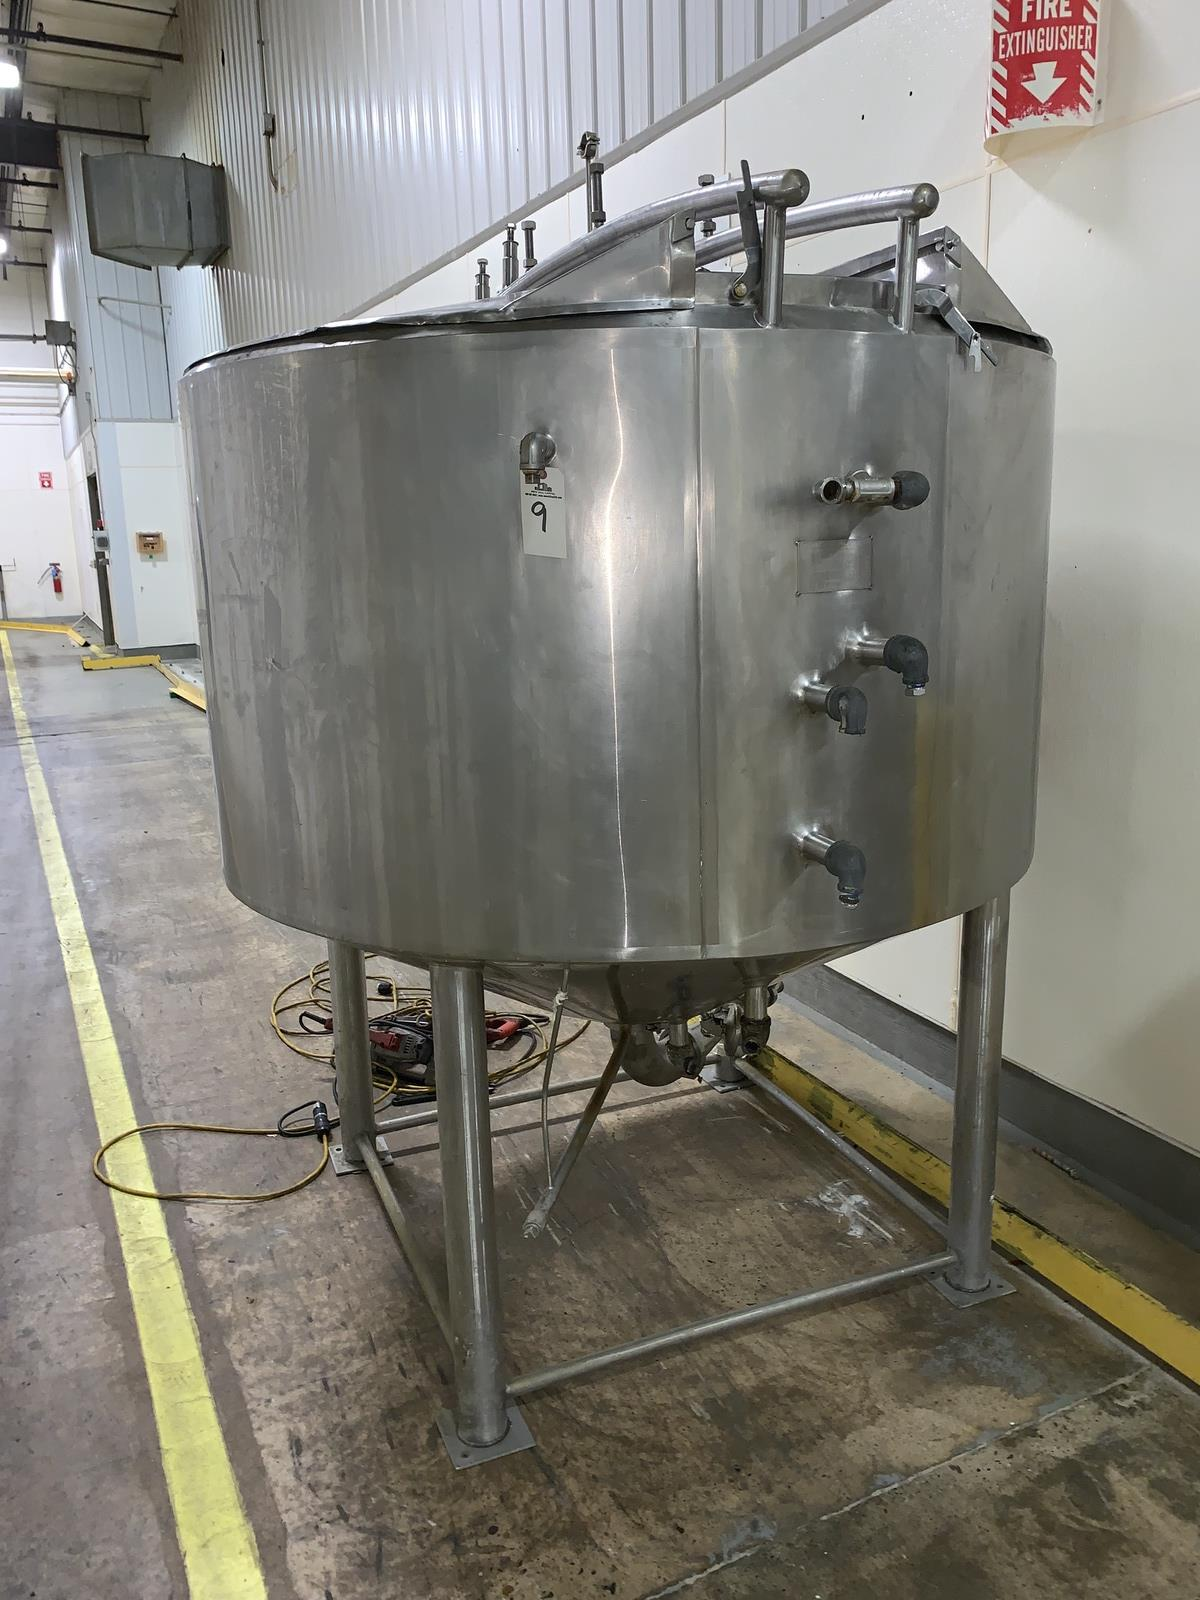 Lot 9 - Cherry Burrell 700 Gallon Stainless Steel Jacketed Storage Tank, 115 PSI @ 350F, 40 | Rig Fee: 400